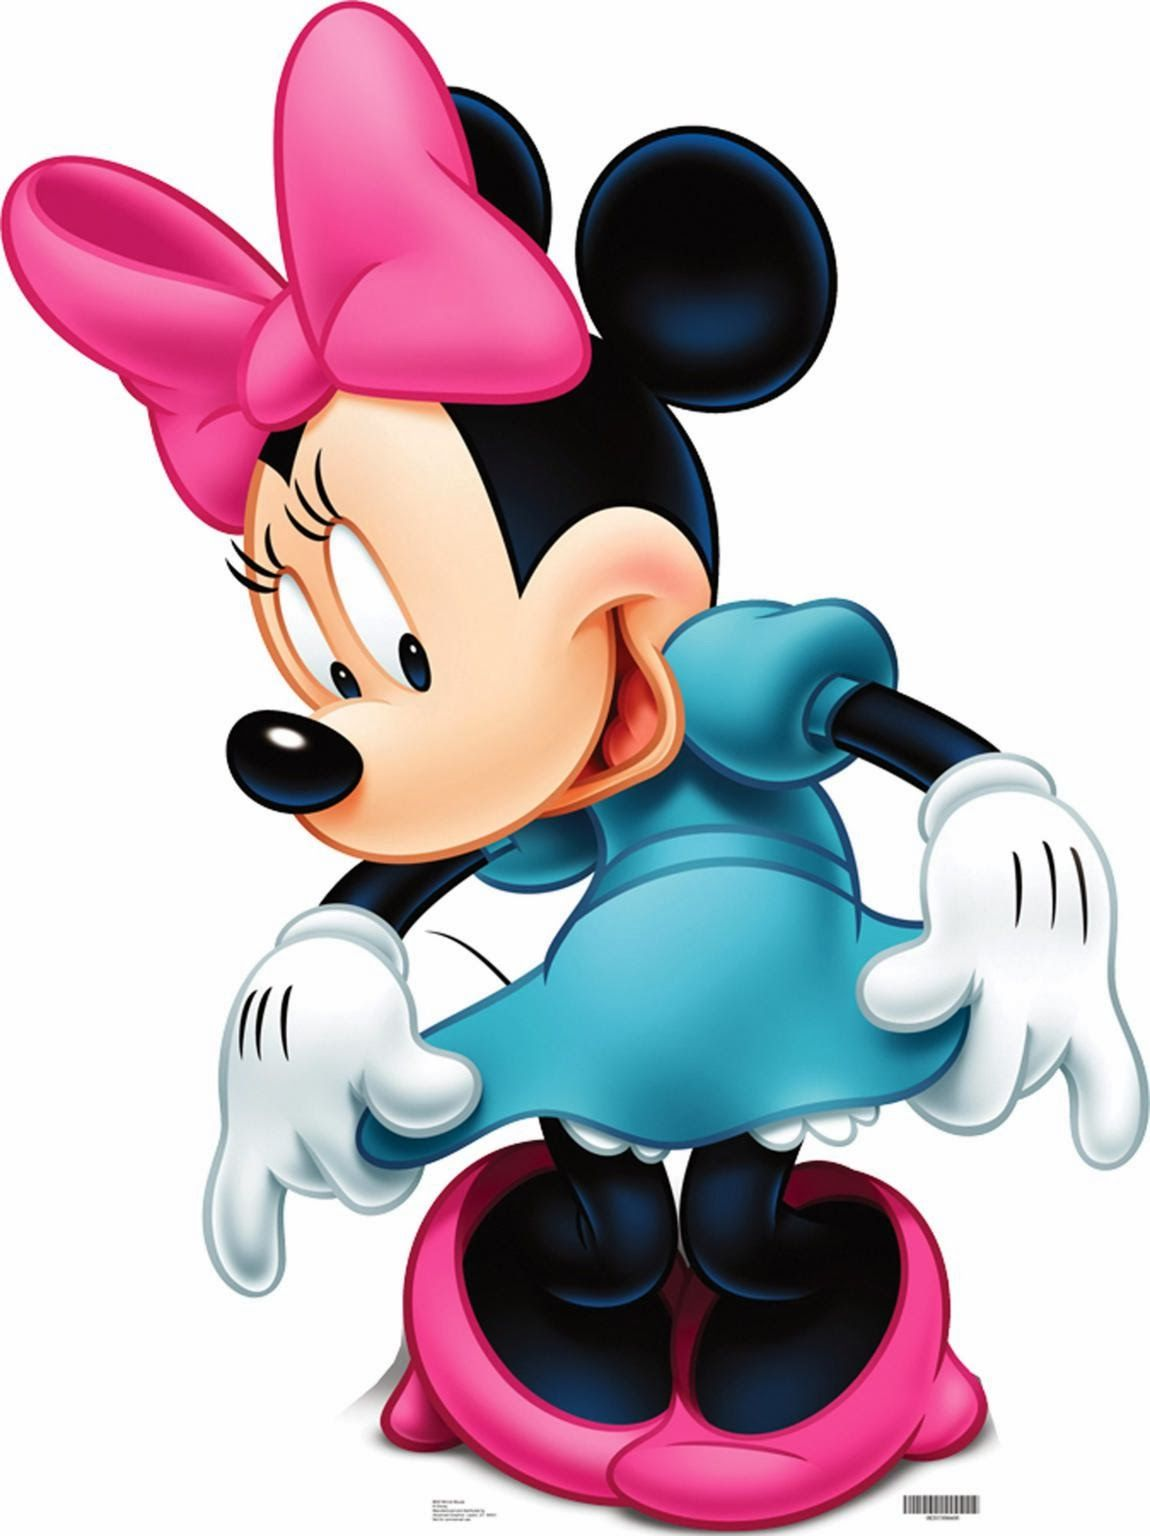 Download Minnie Mouse Cartoons Wallpapers in high